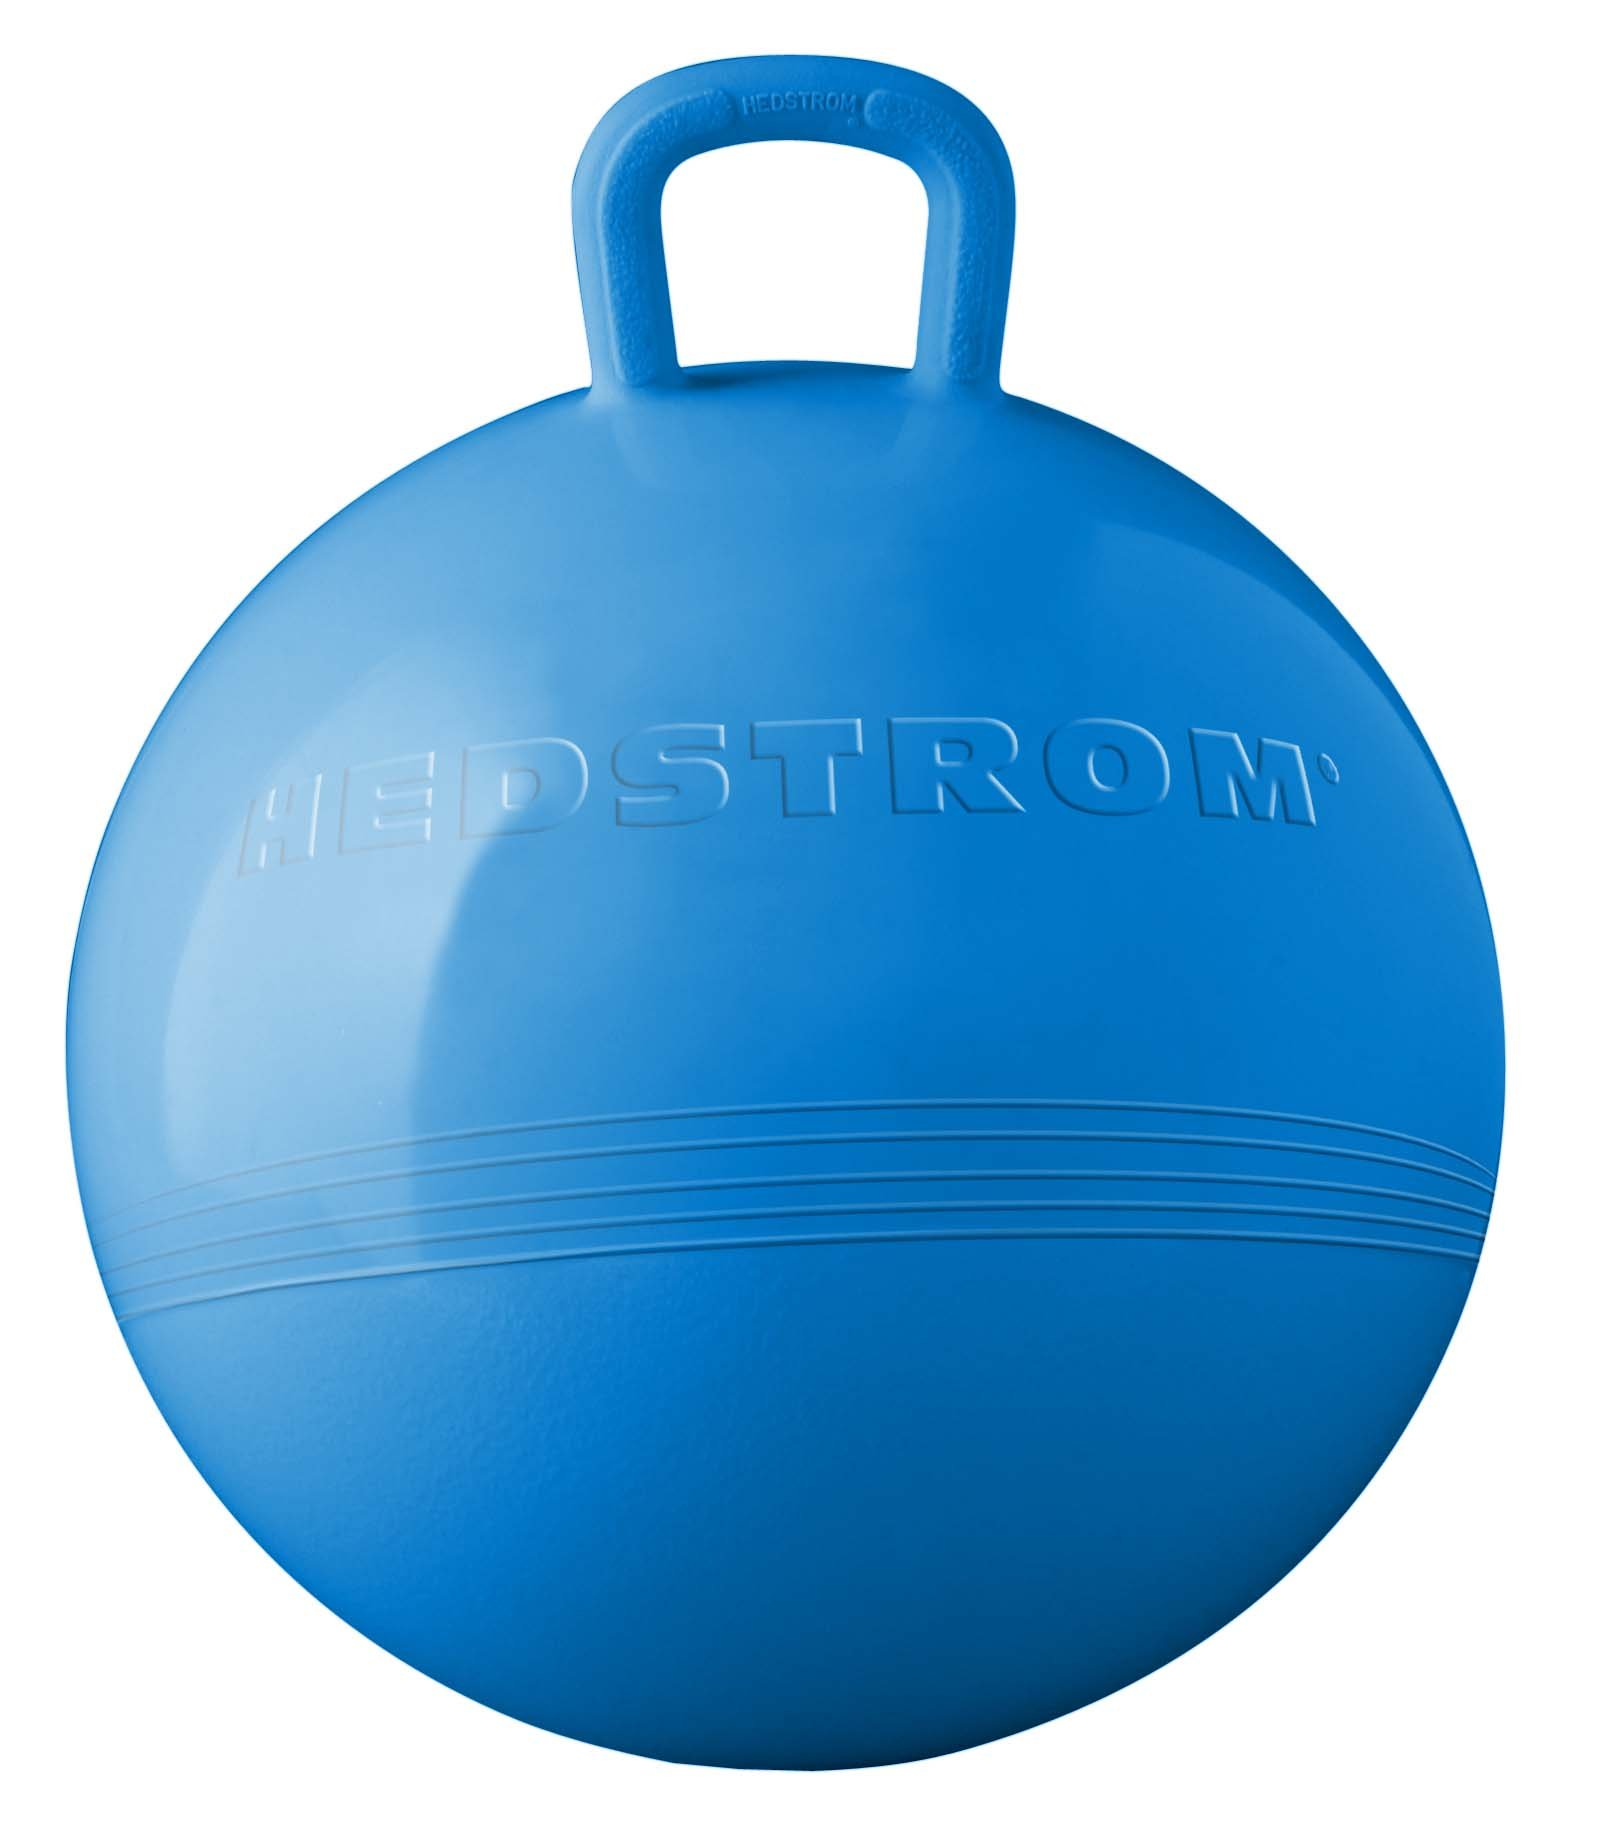 Hedstrom Blue Hopper Ball, Kid's ride-on toy, Bouncy hopping ball with handle - 15 Inch by Hedstrom